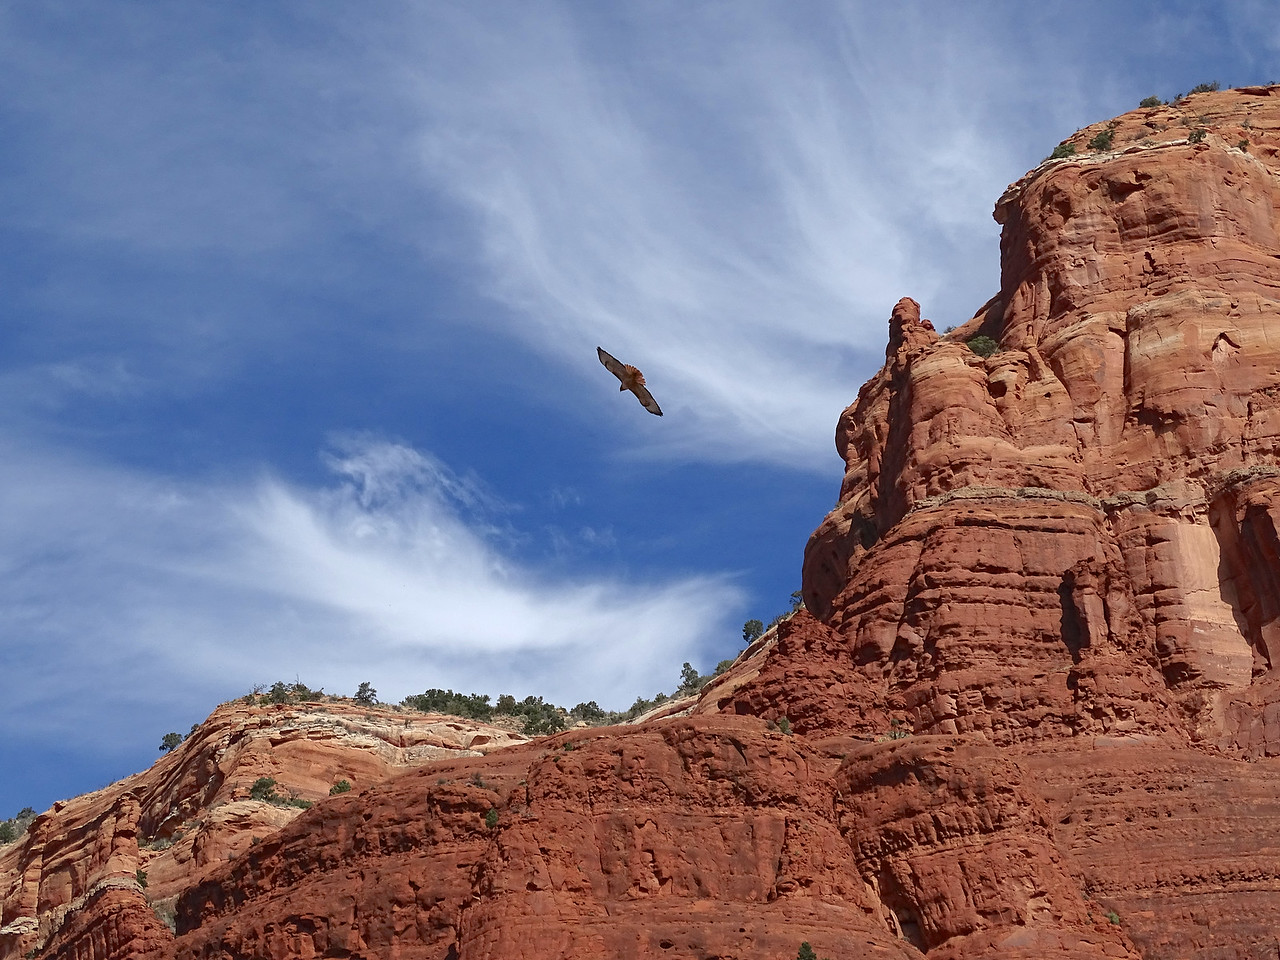 It was quite a moment when this hawk caught an updraft and rose up from nowhere